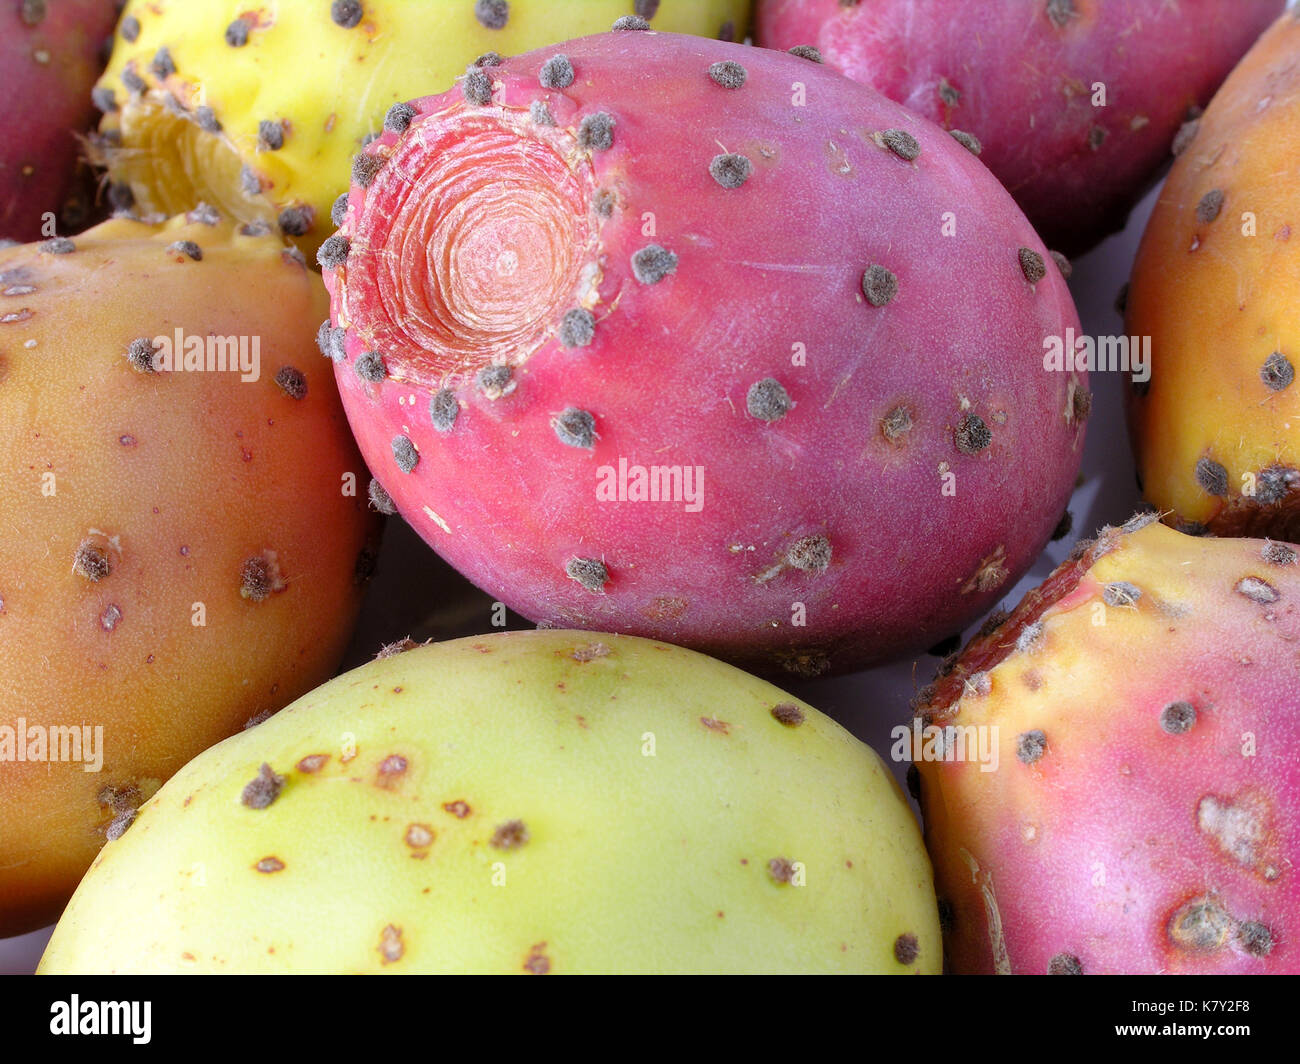 Prickly Pear Fruit - Stock Image